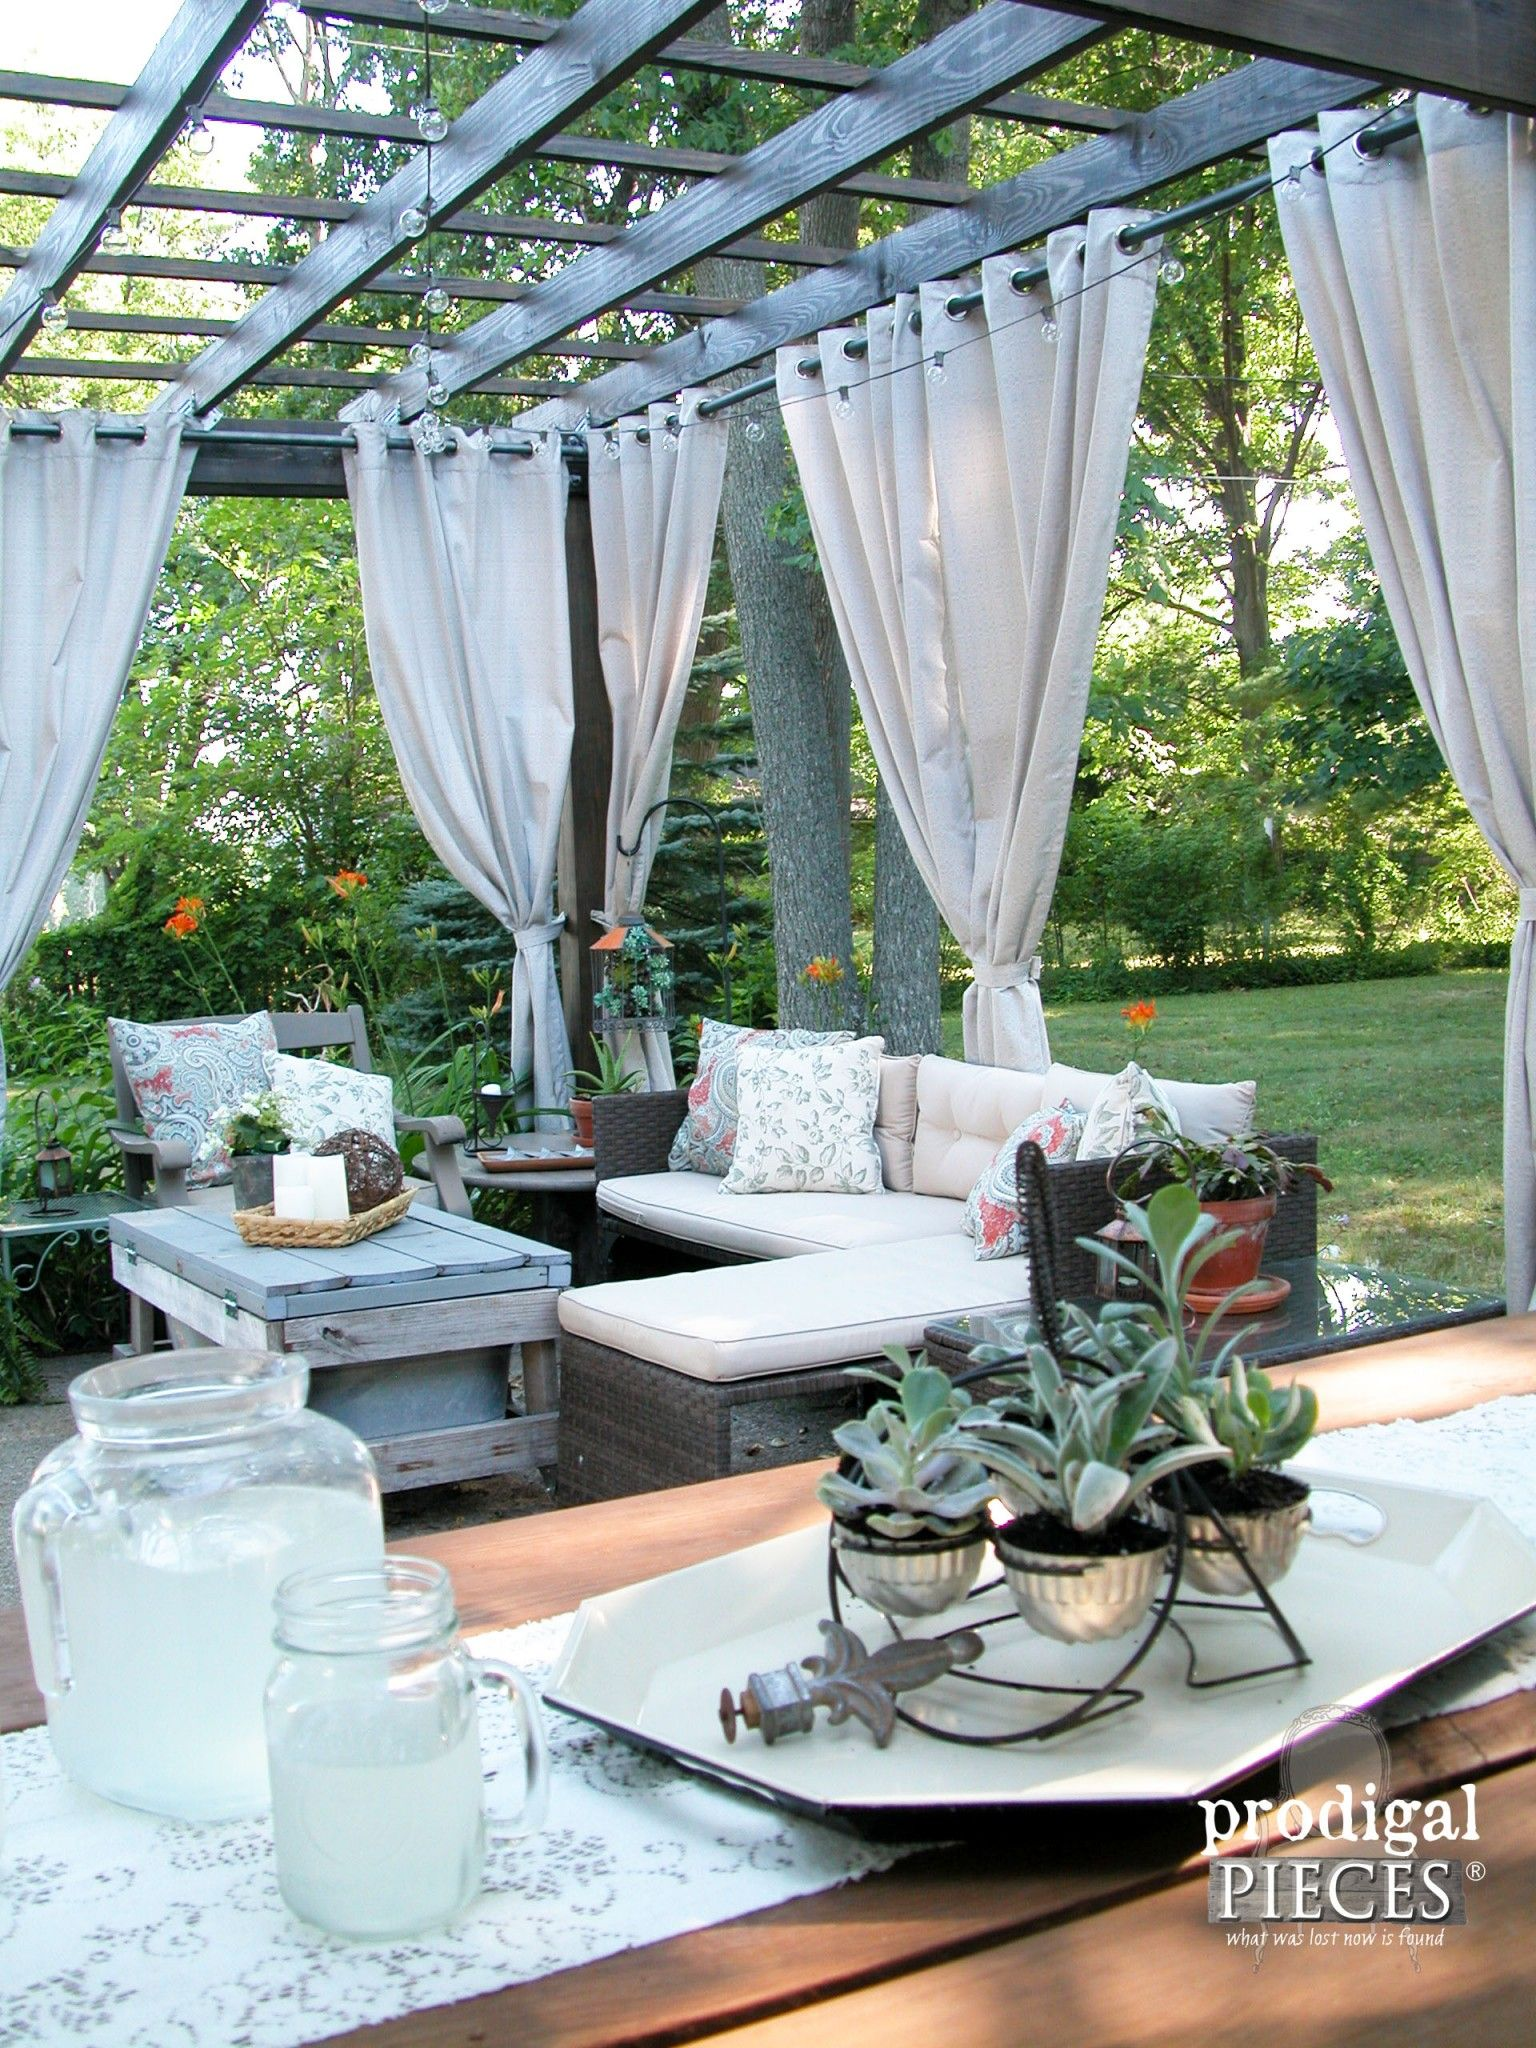 stirring own outside curtains patio pergola caoutside blindsoutside of patiosoutside ideas size pergolas your outdoor for make pergolaoutside full photos fresno beautiful designoutside curtain concept mess lights